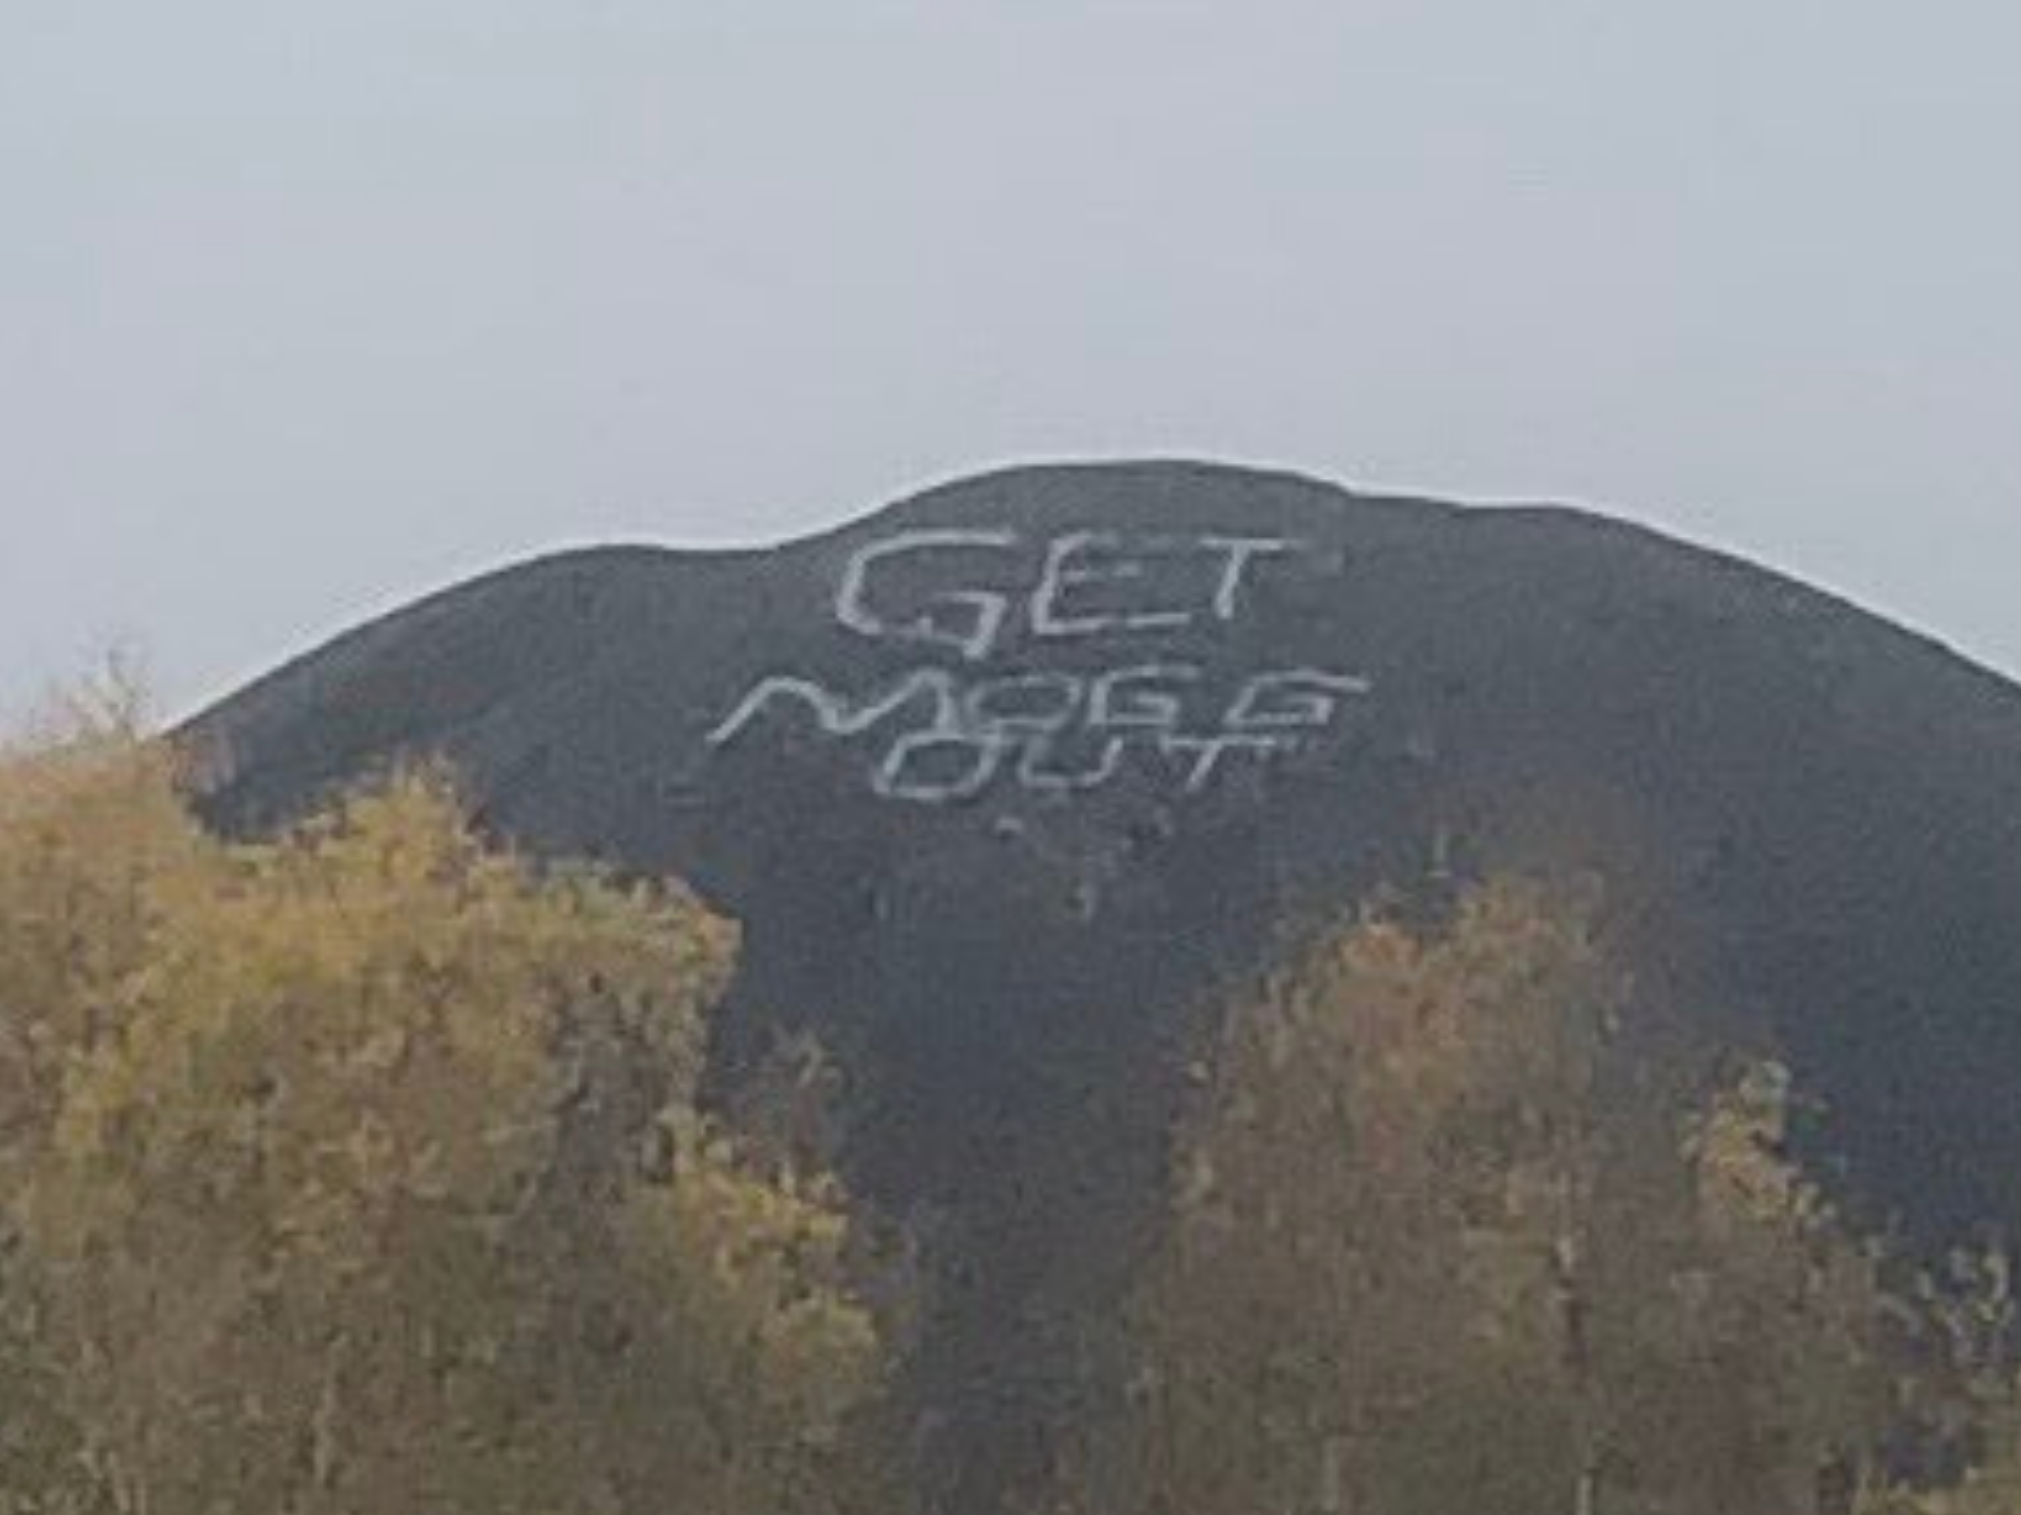 Giant 'Get Mogg Out' message appears on hill near Tory MP's home